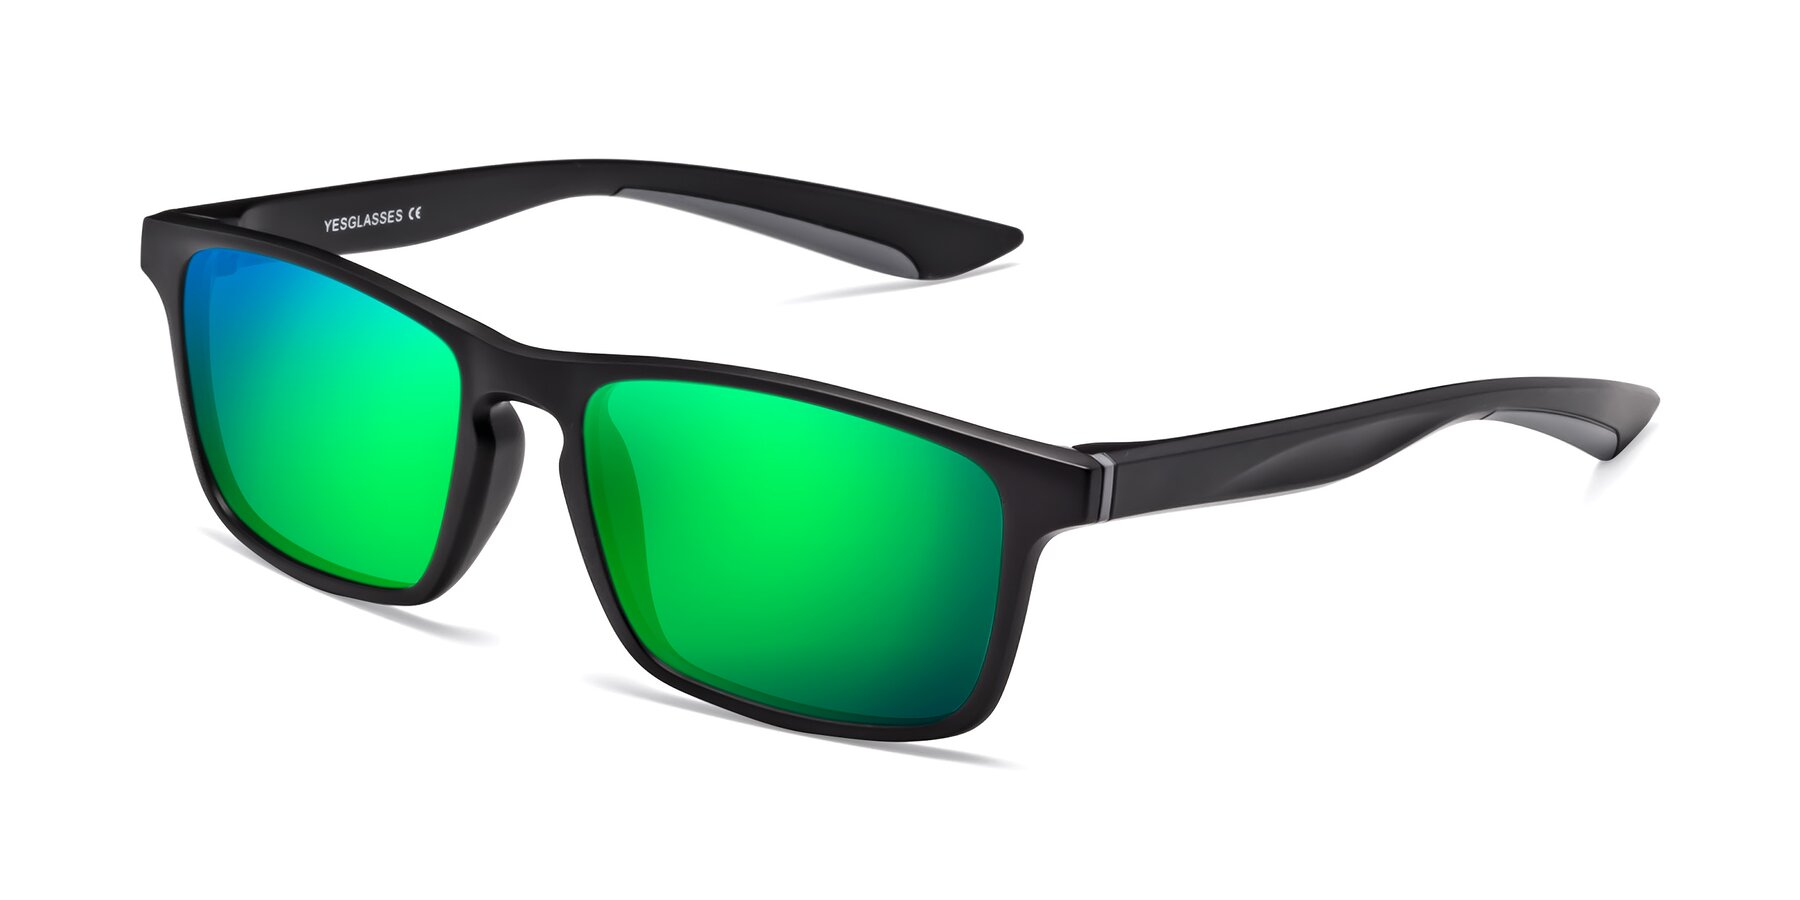 Angle of Passion in Matte Black-Gray with Green Mirrored Lenses